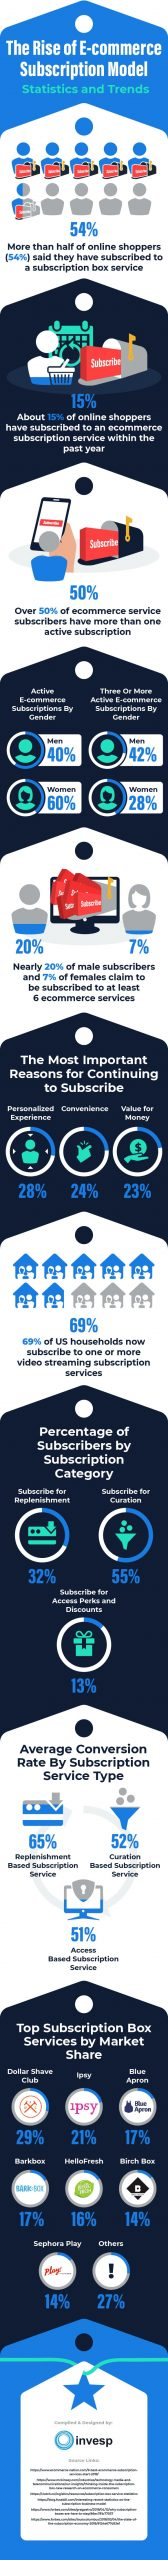 4 Reasons Why E-commerce Subscription Services Are Growing [Infographic]